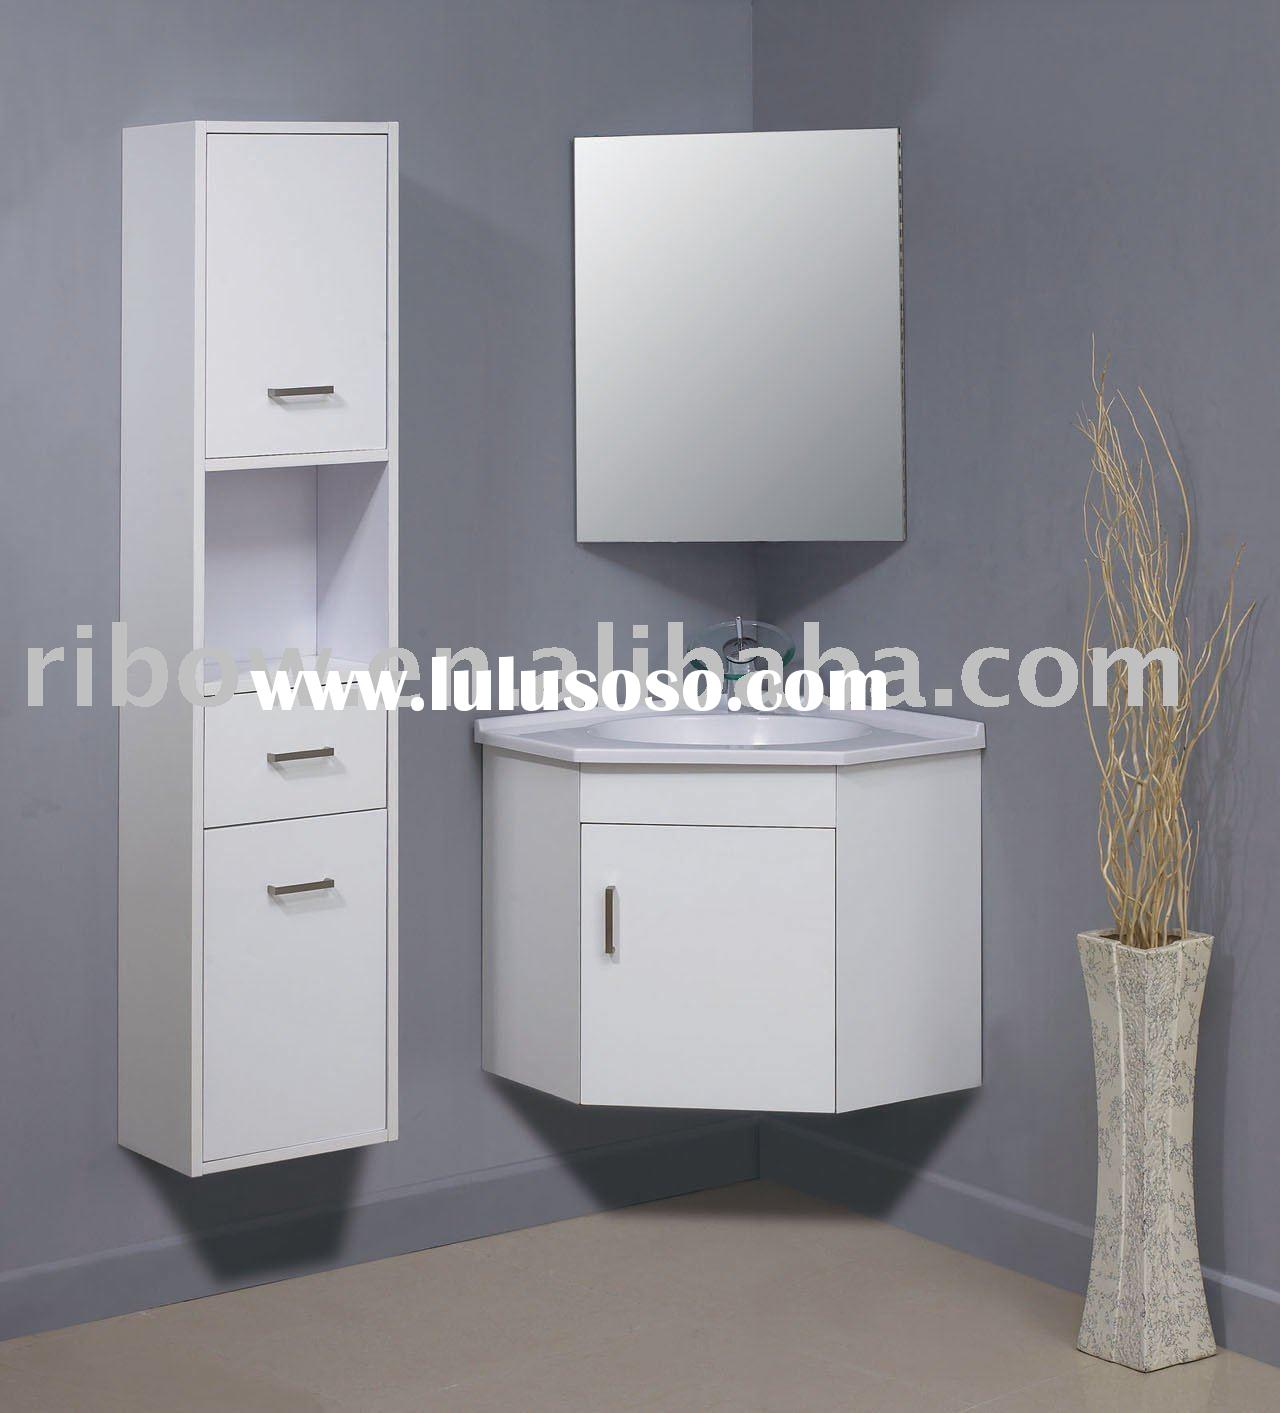 V95600-1 Wall-mounted bathroom corner cabinet